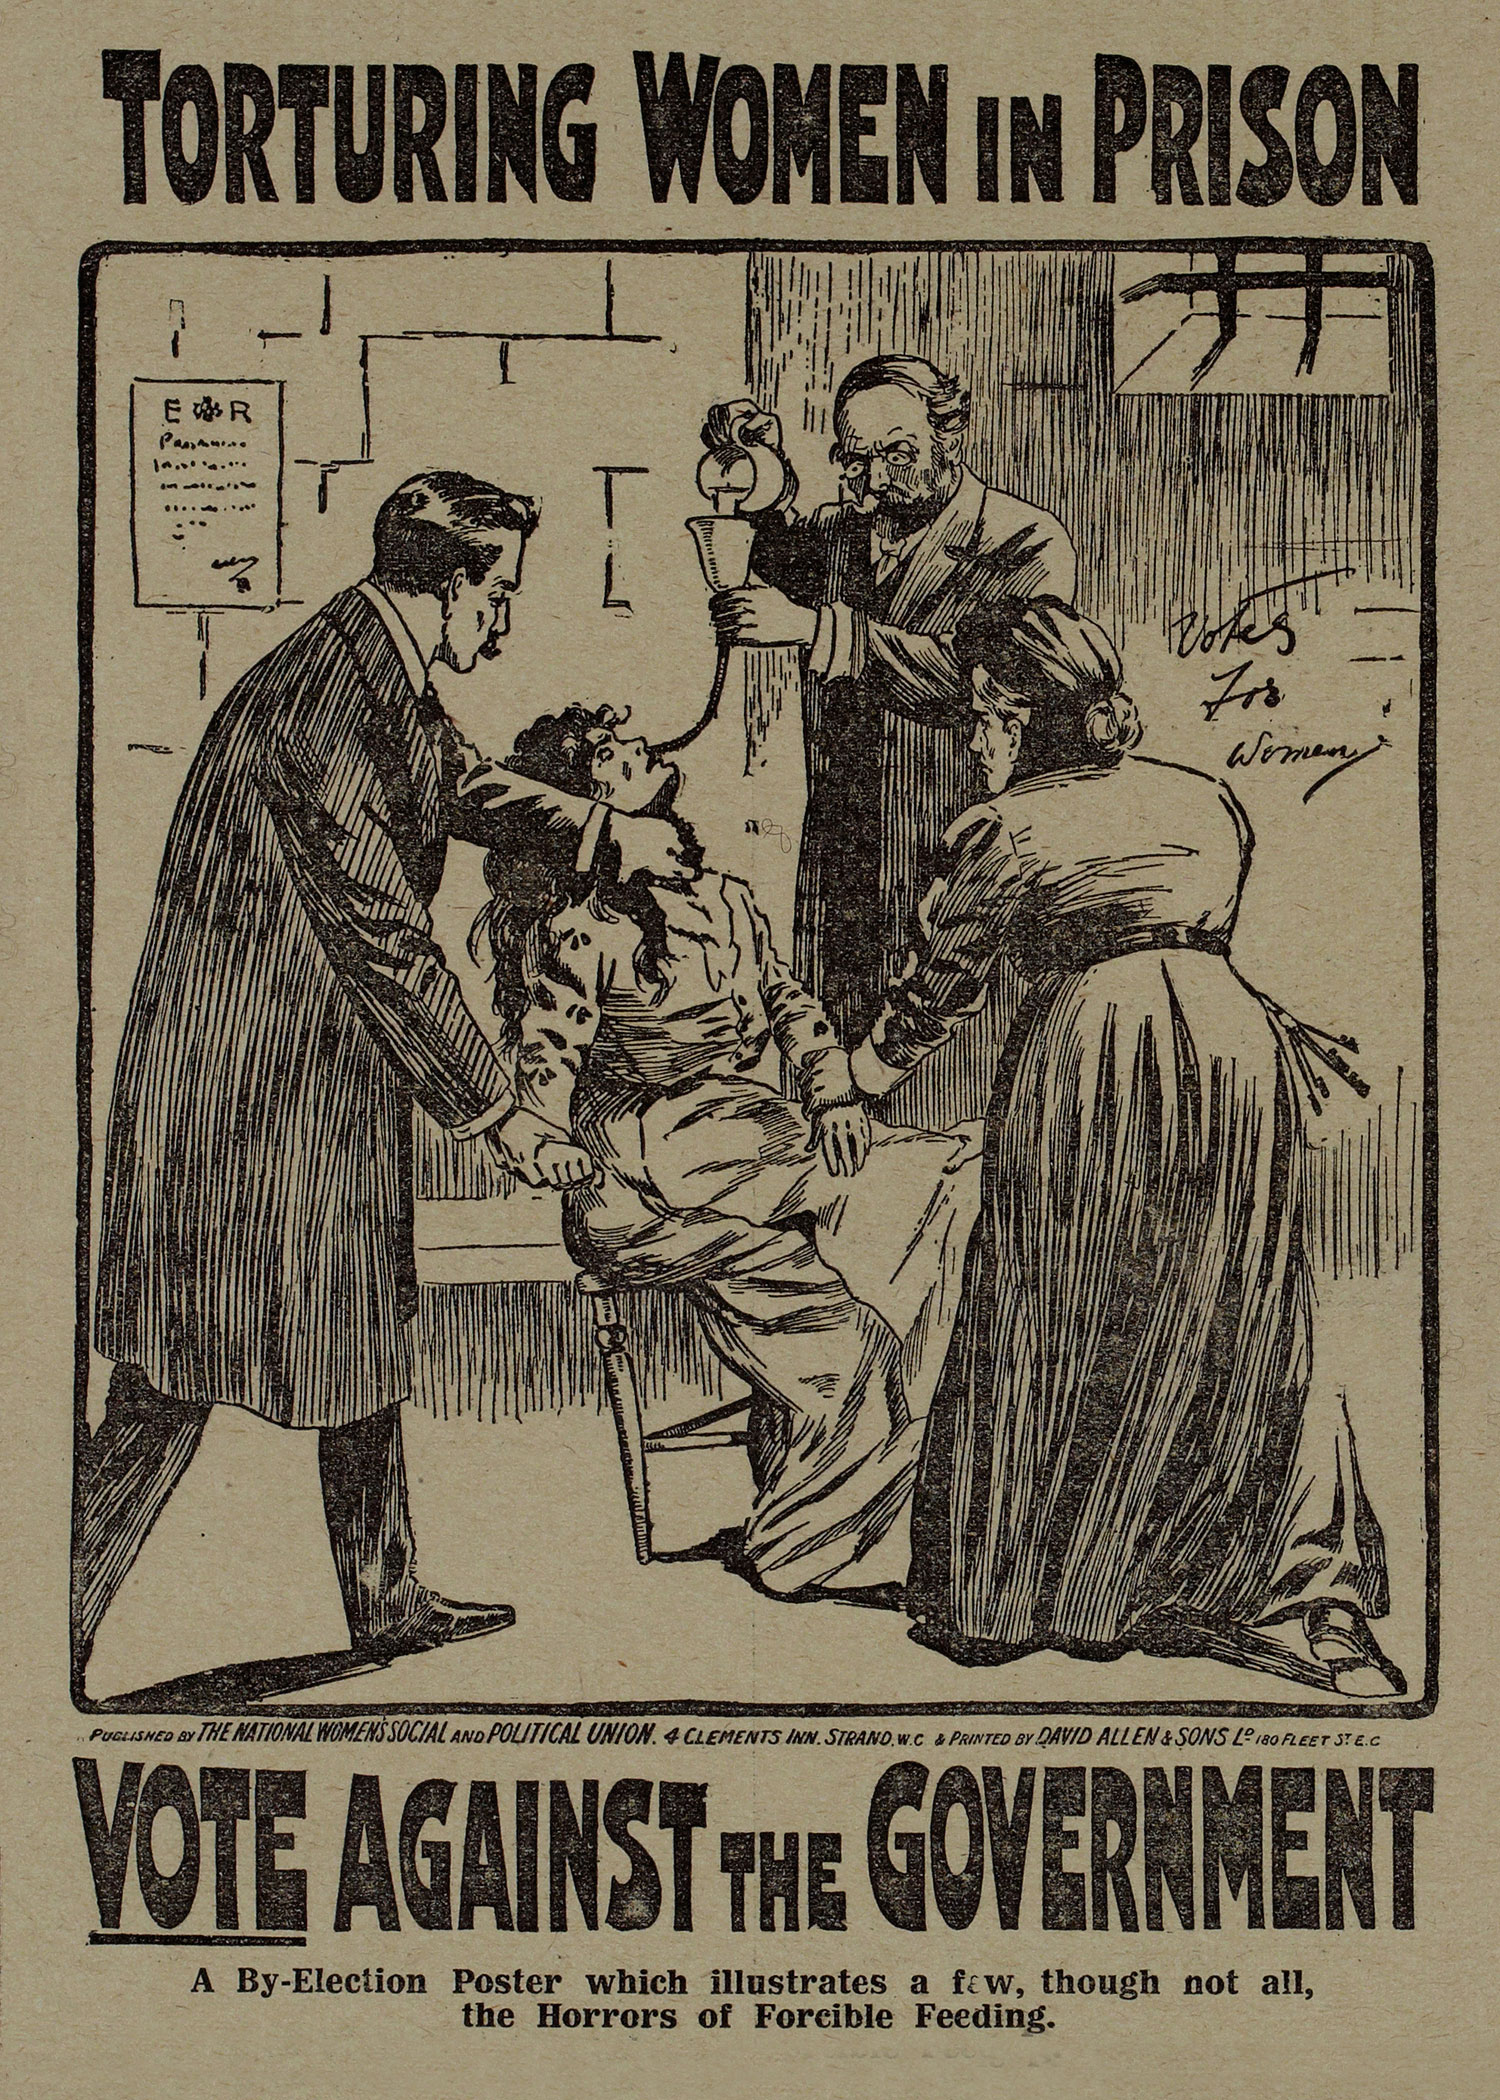 Printed by-election poster featuring image of forced feeding, 1909